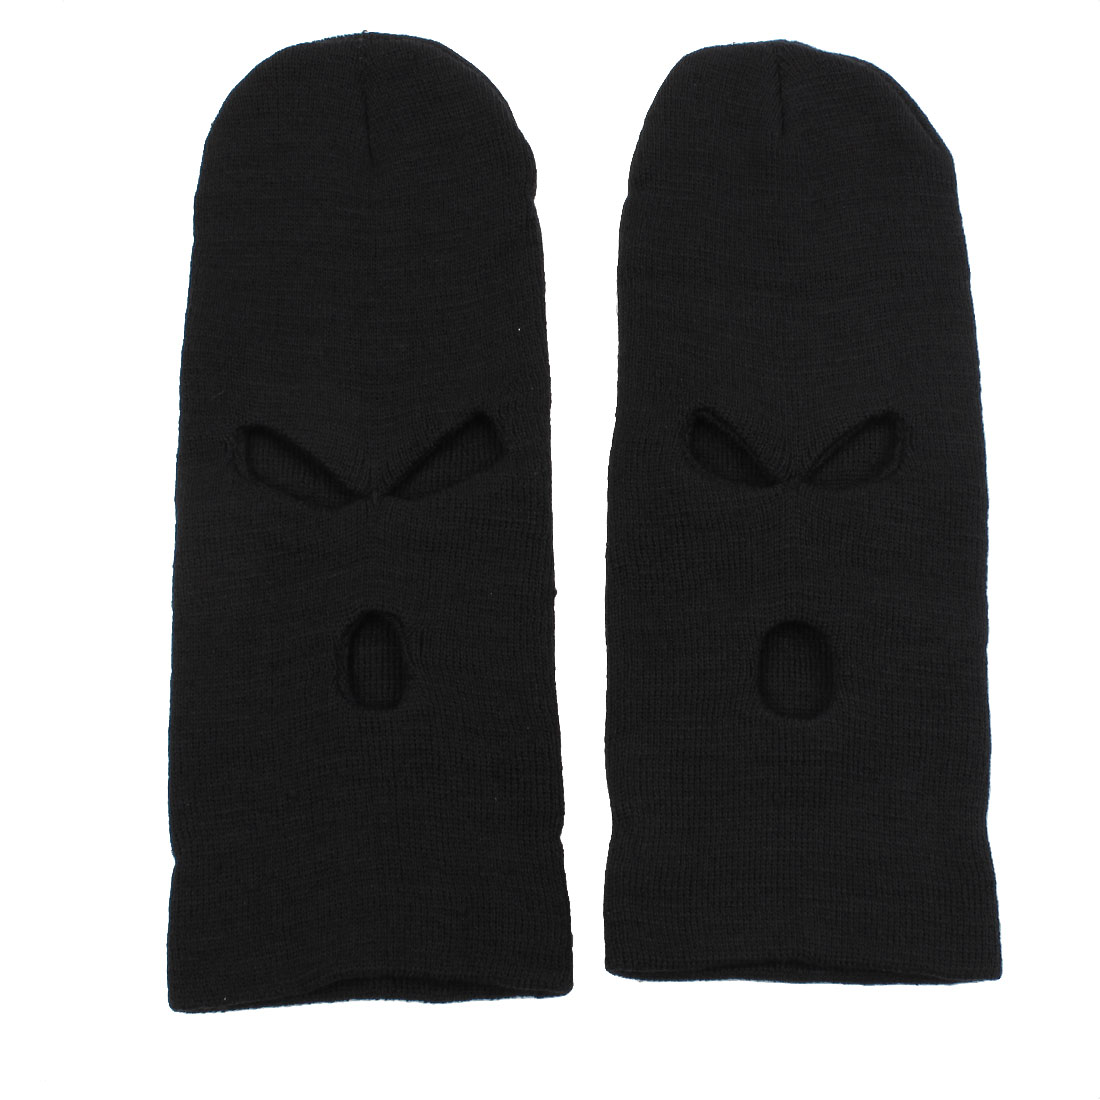 Ski Motorcycle Cover Winter Warmer Balaclava Hat Full Face 3 Holes Mask Cap Black 2PCS